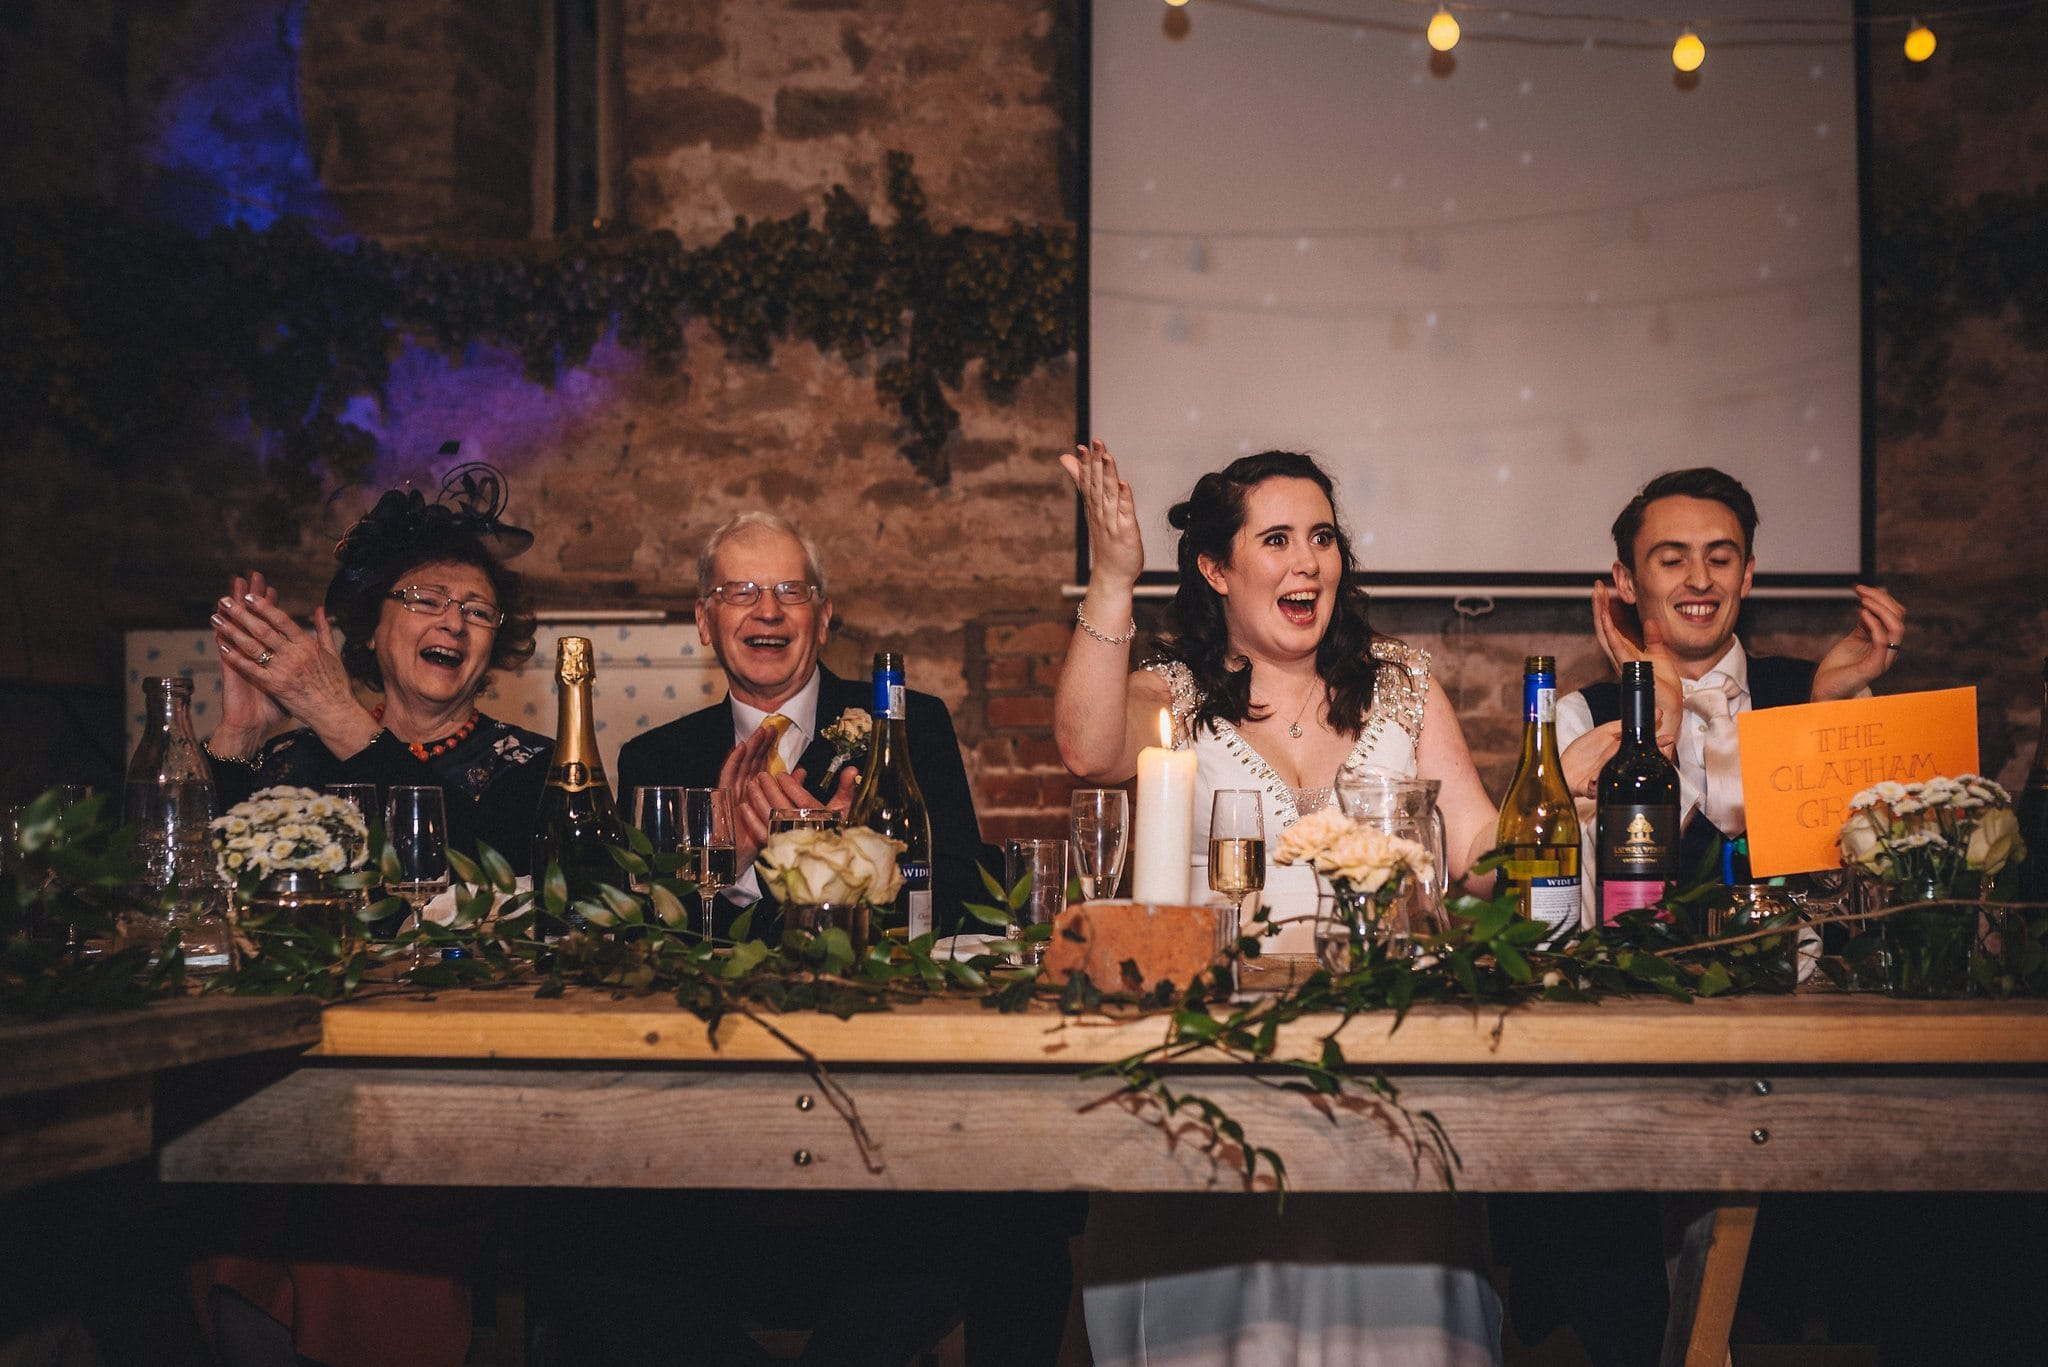 Bride gestures happily to her bridesmaids as they make a speech